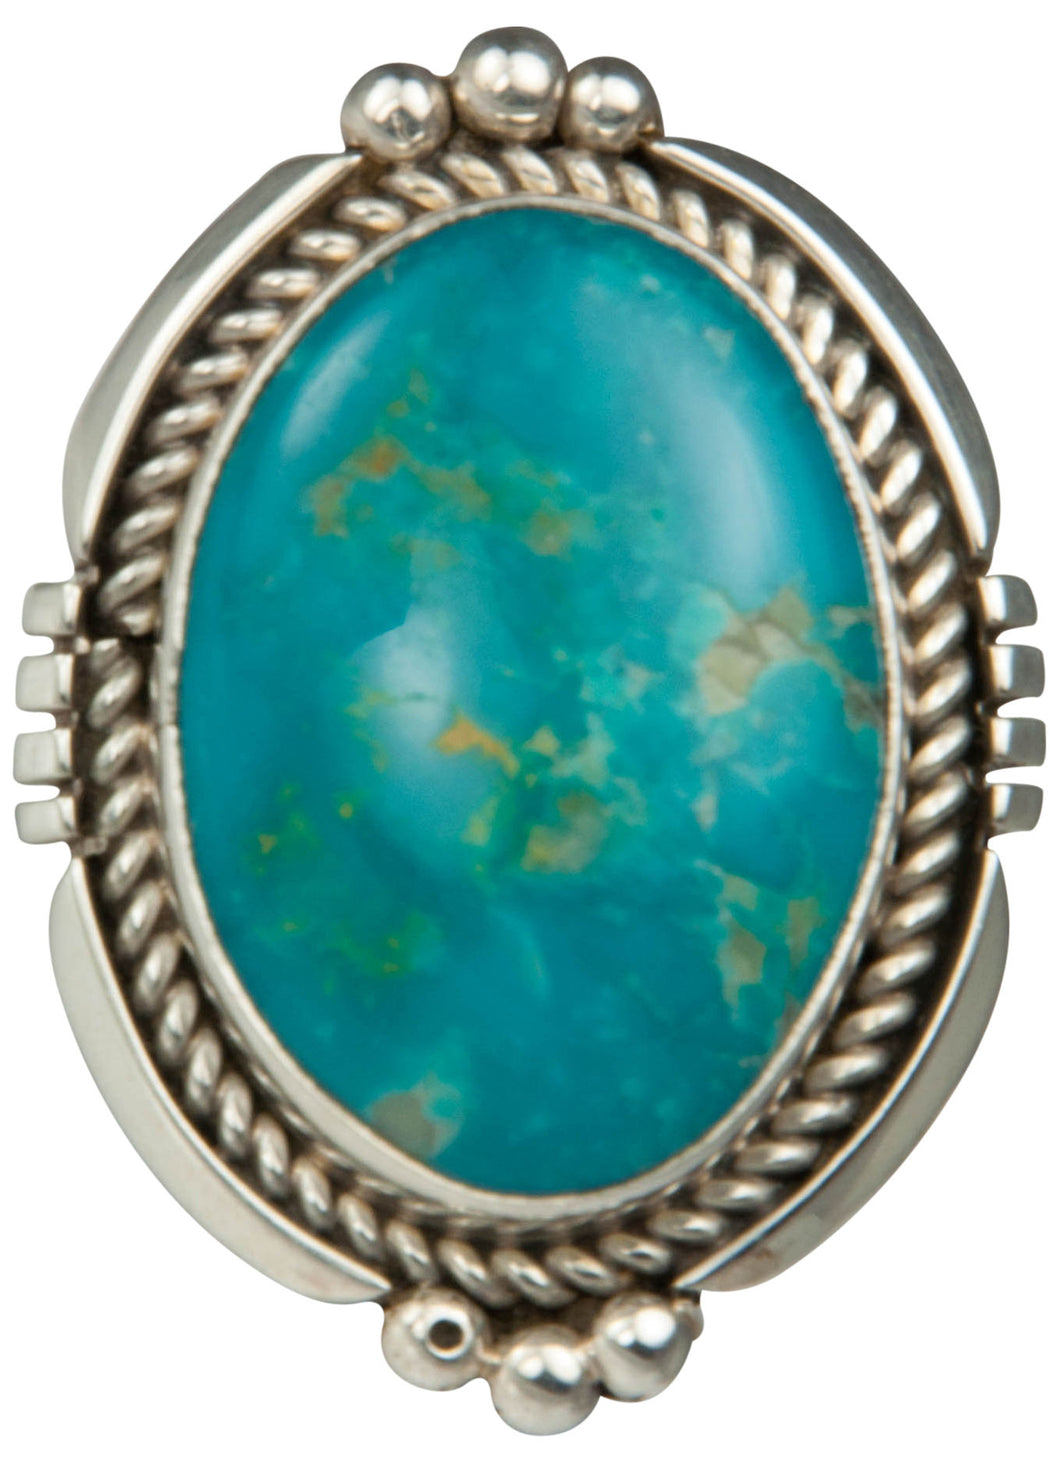 Navajo Native American Kingman Turquoise Ring Size 8 1/2 by Platero SKU229206